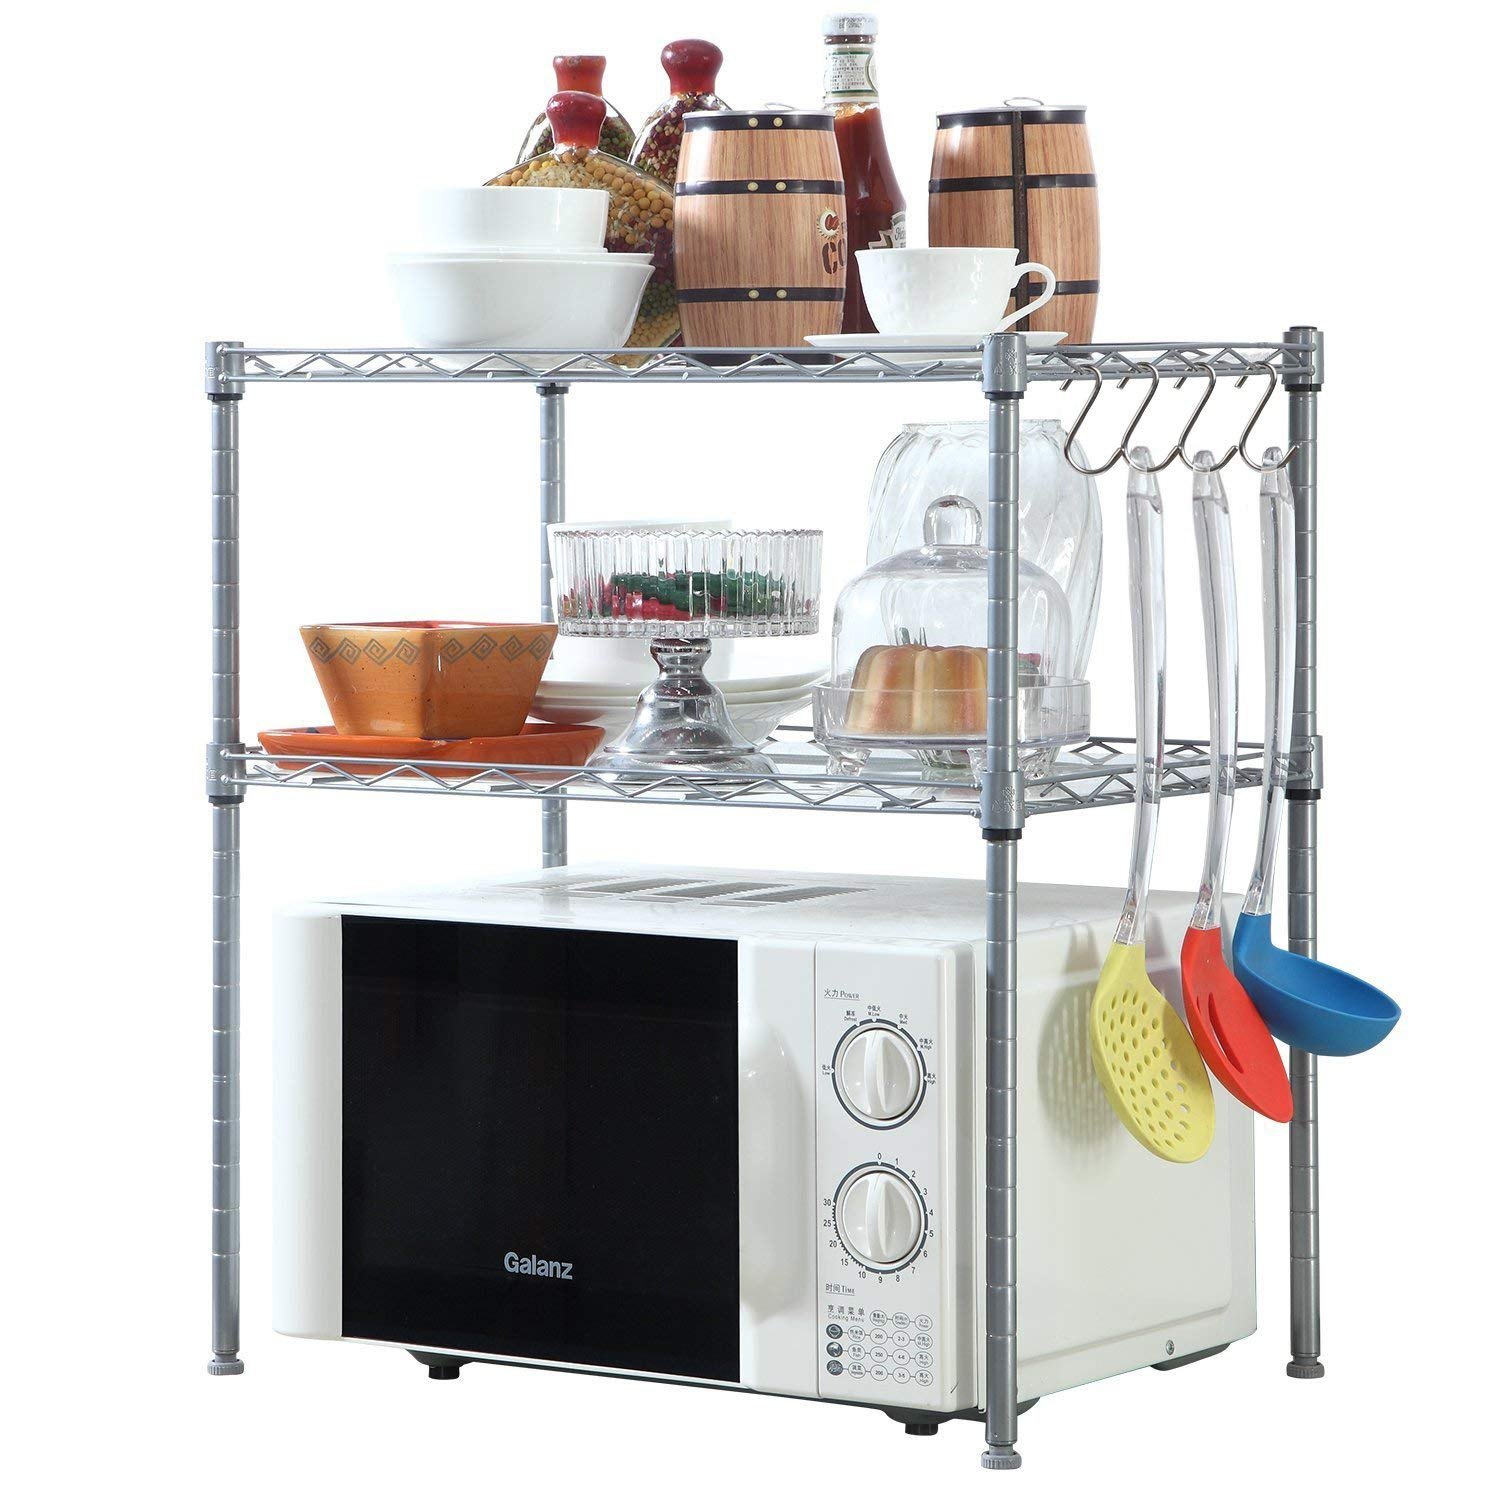 HOMFA Kitchen Microwave Oven Rack Shelving Unit,2-Tier Adjustable Stainless Steel Storage Shelf (Renewed)